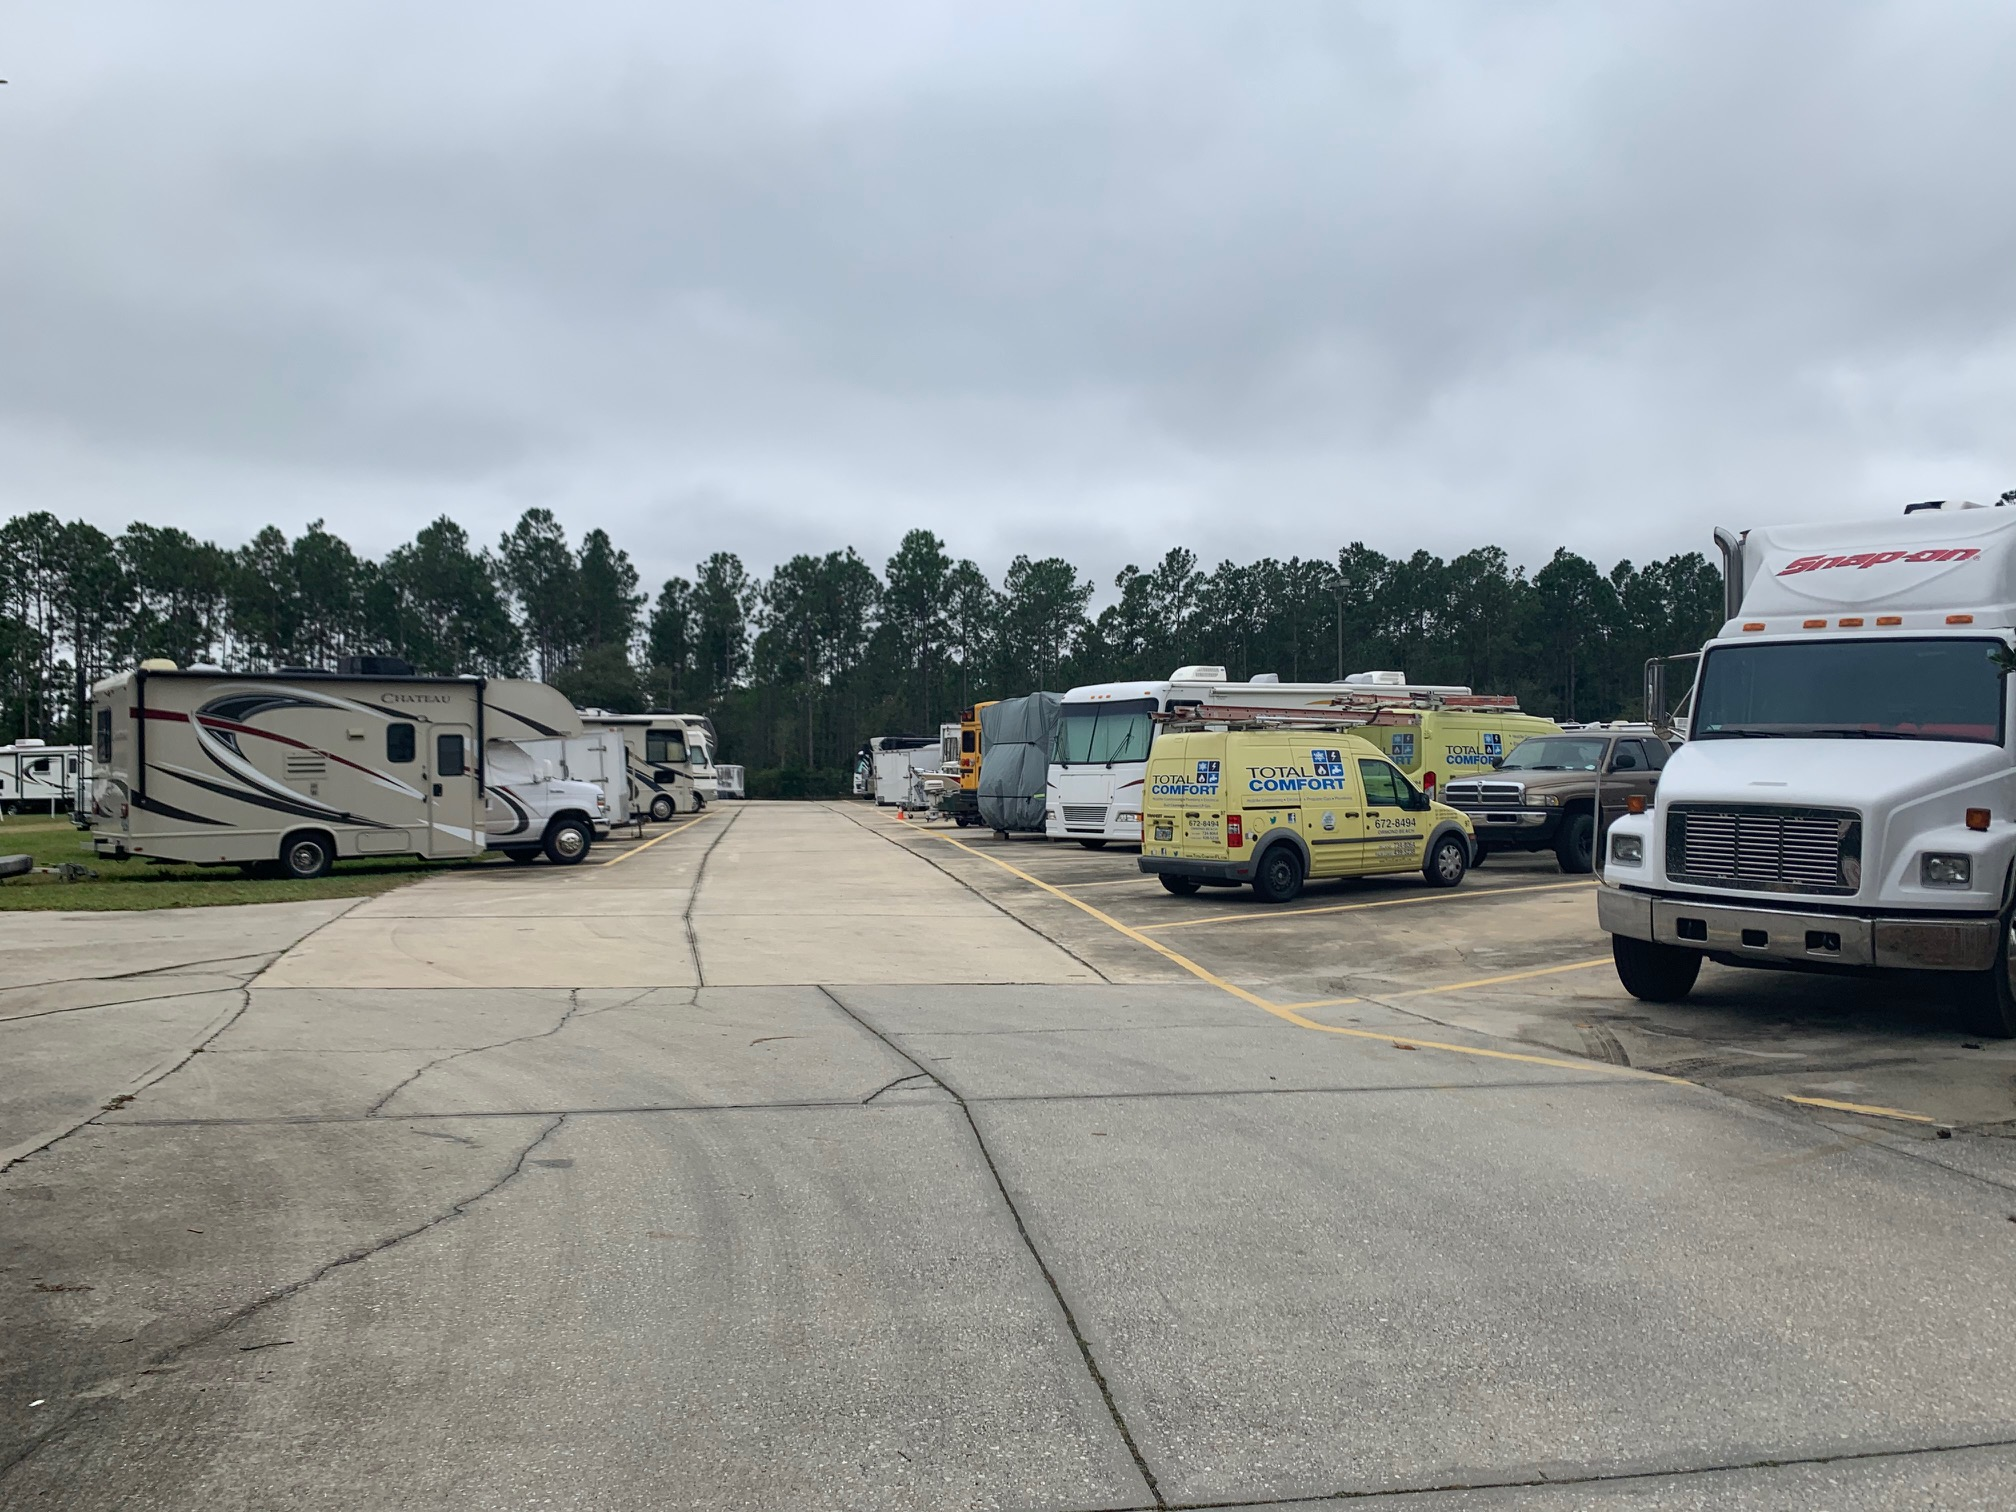 RV and trailer parking in Bunnell, FL